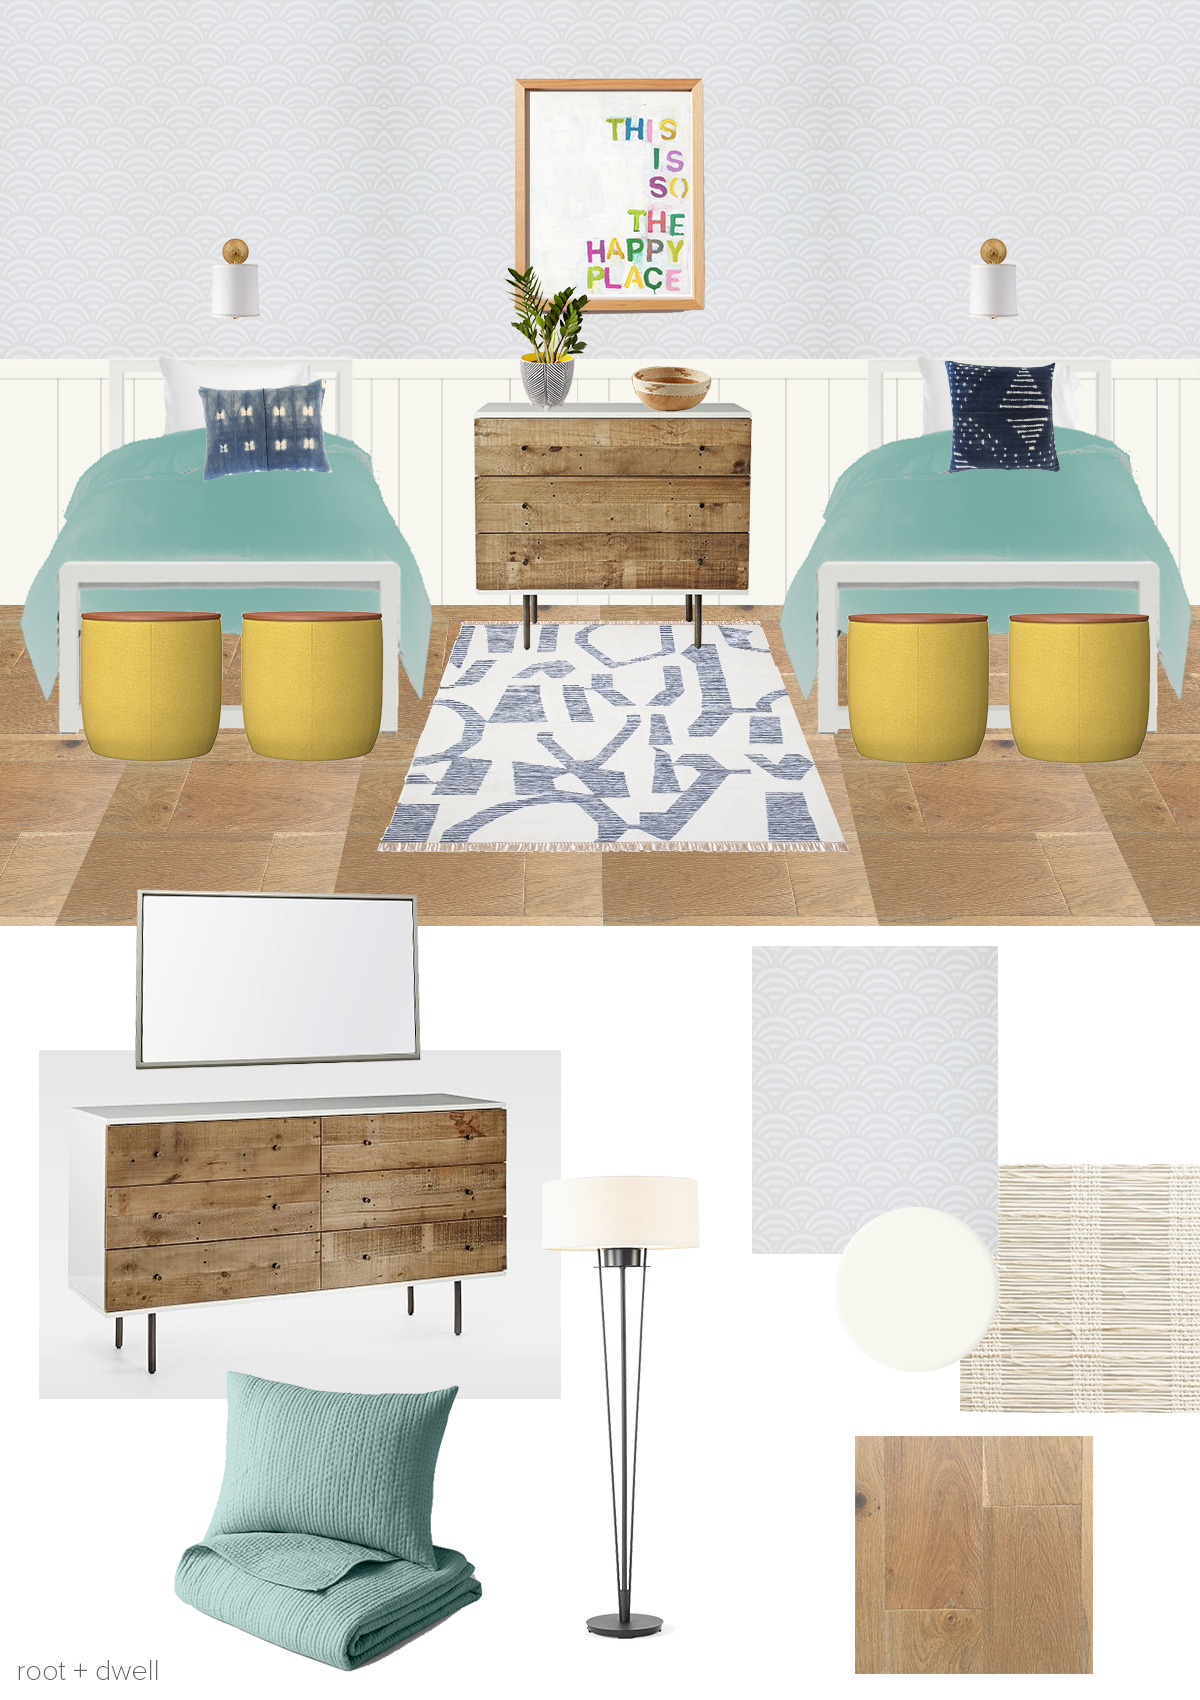 beds  |  bedding  |  sconces  |  wallpaper  |  flooring  |  area rug  |  paint color  |  woven shades  |  standing lamp  |  large dresser  |  small dresser  |  mirror  |  storage ottomans  |  throw pillow 1  |  throw pillow 2  |  artwork  |  plant  |  planter  |  bowl